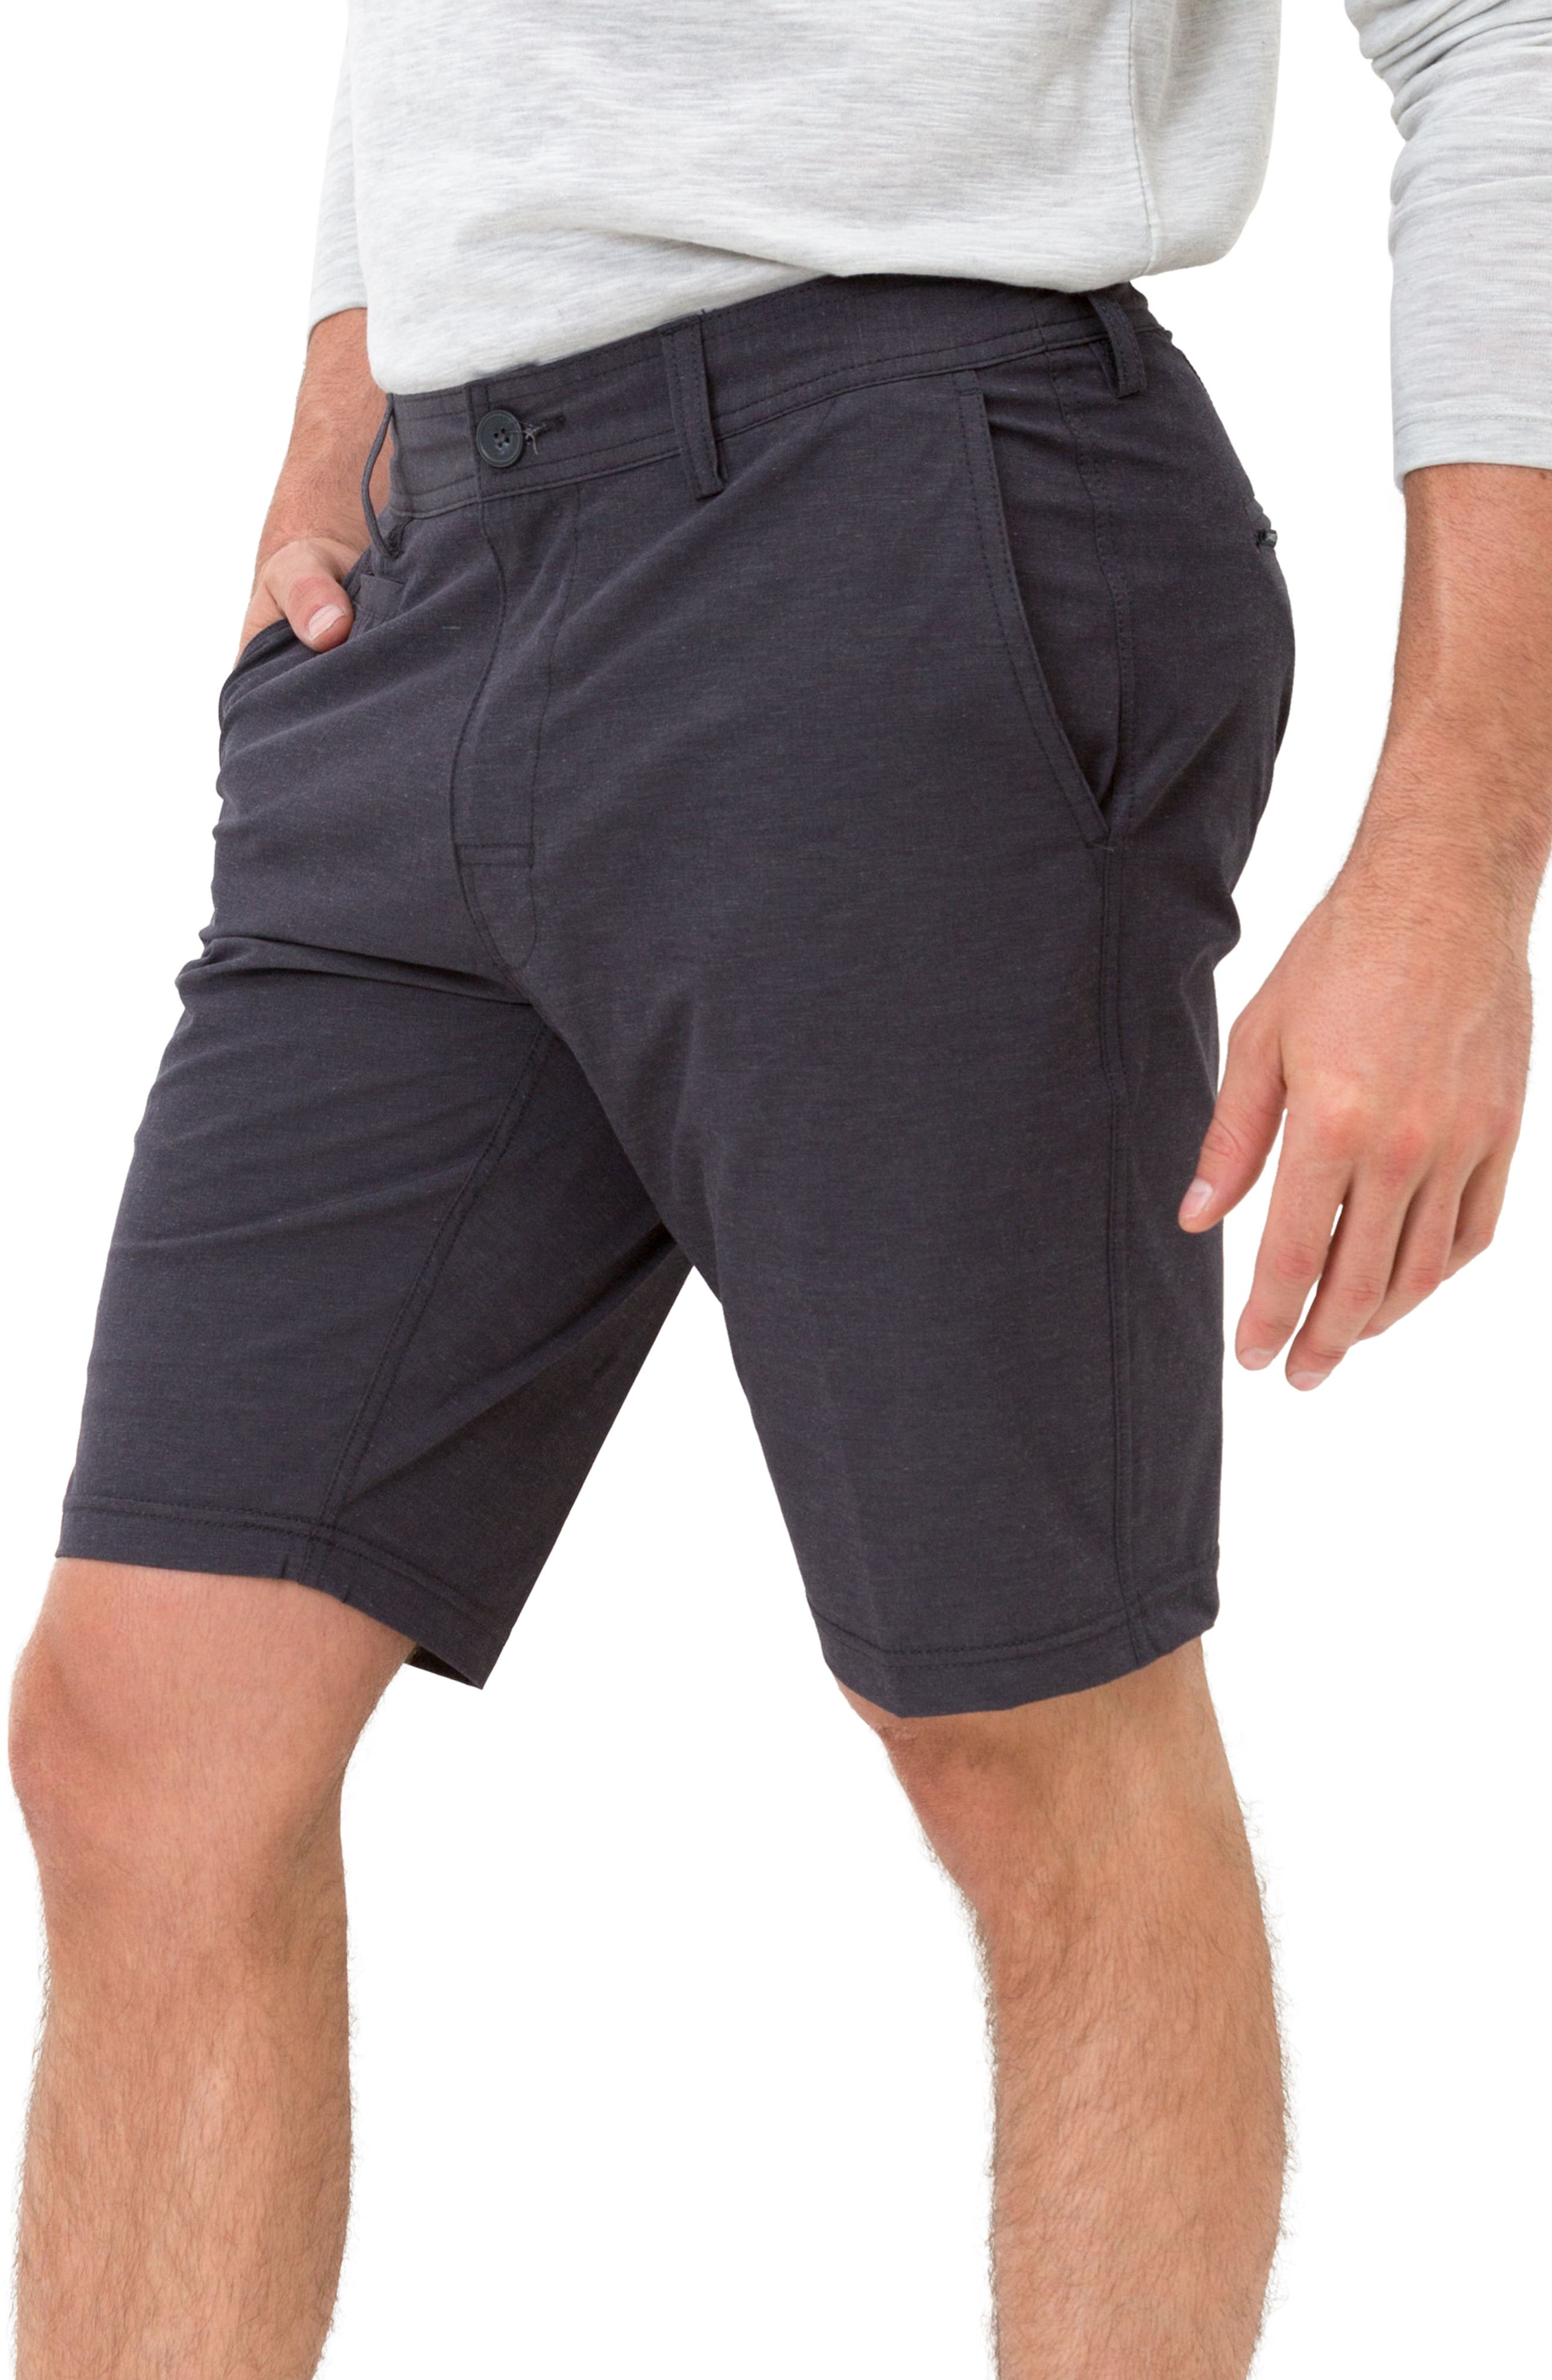 Velocity Hybrid Shorts,                             Alternate thumbnail 3, color,                             CHARCOAL